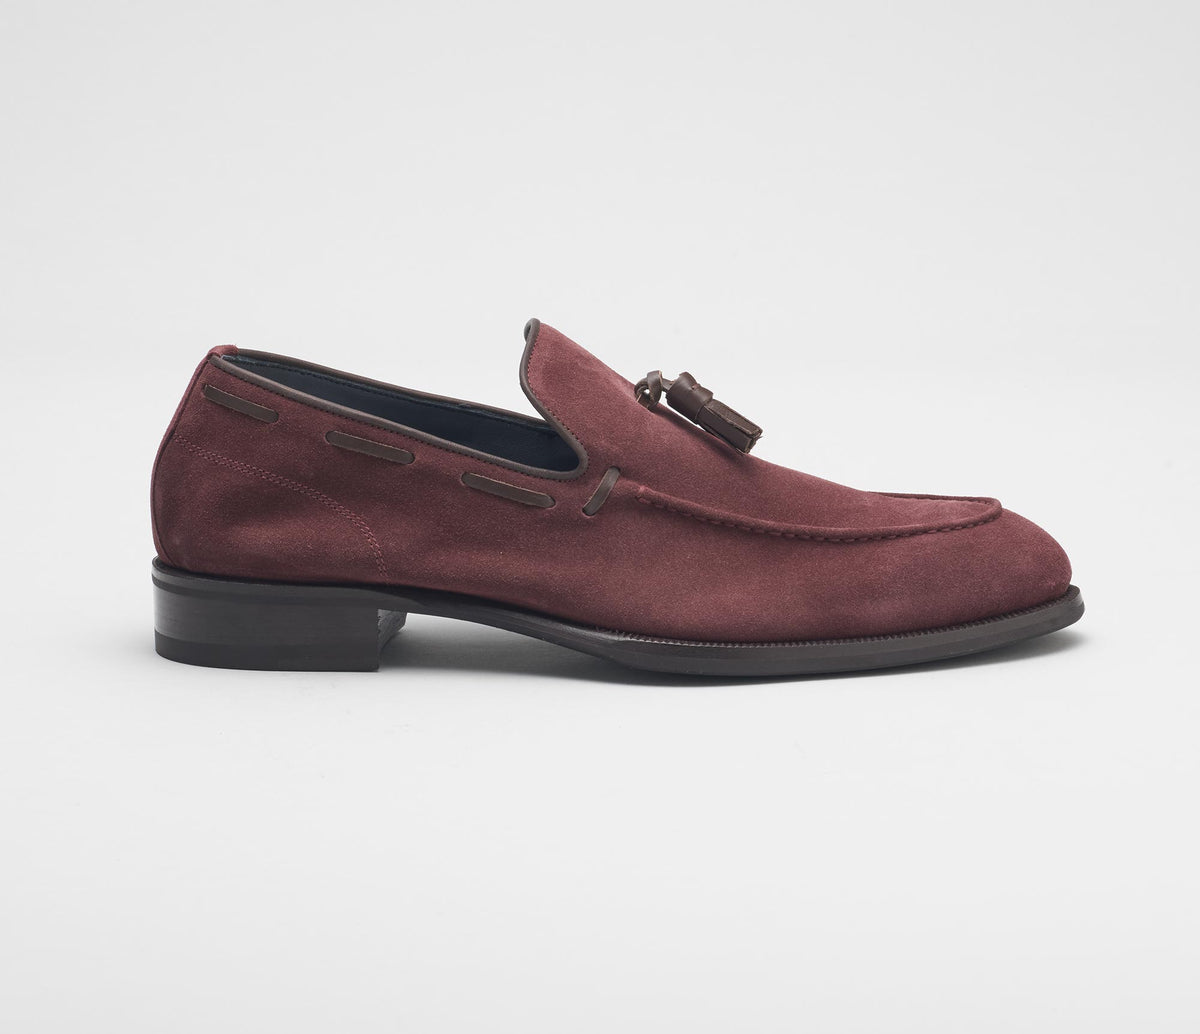 Napoli Suede Loafer in Anima